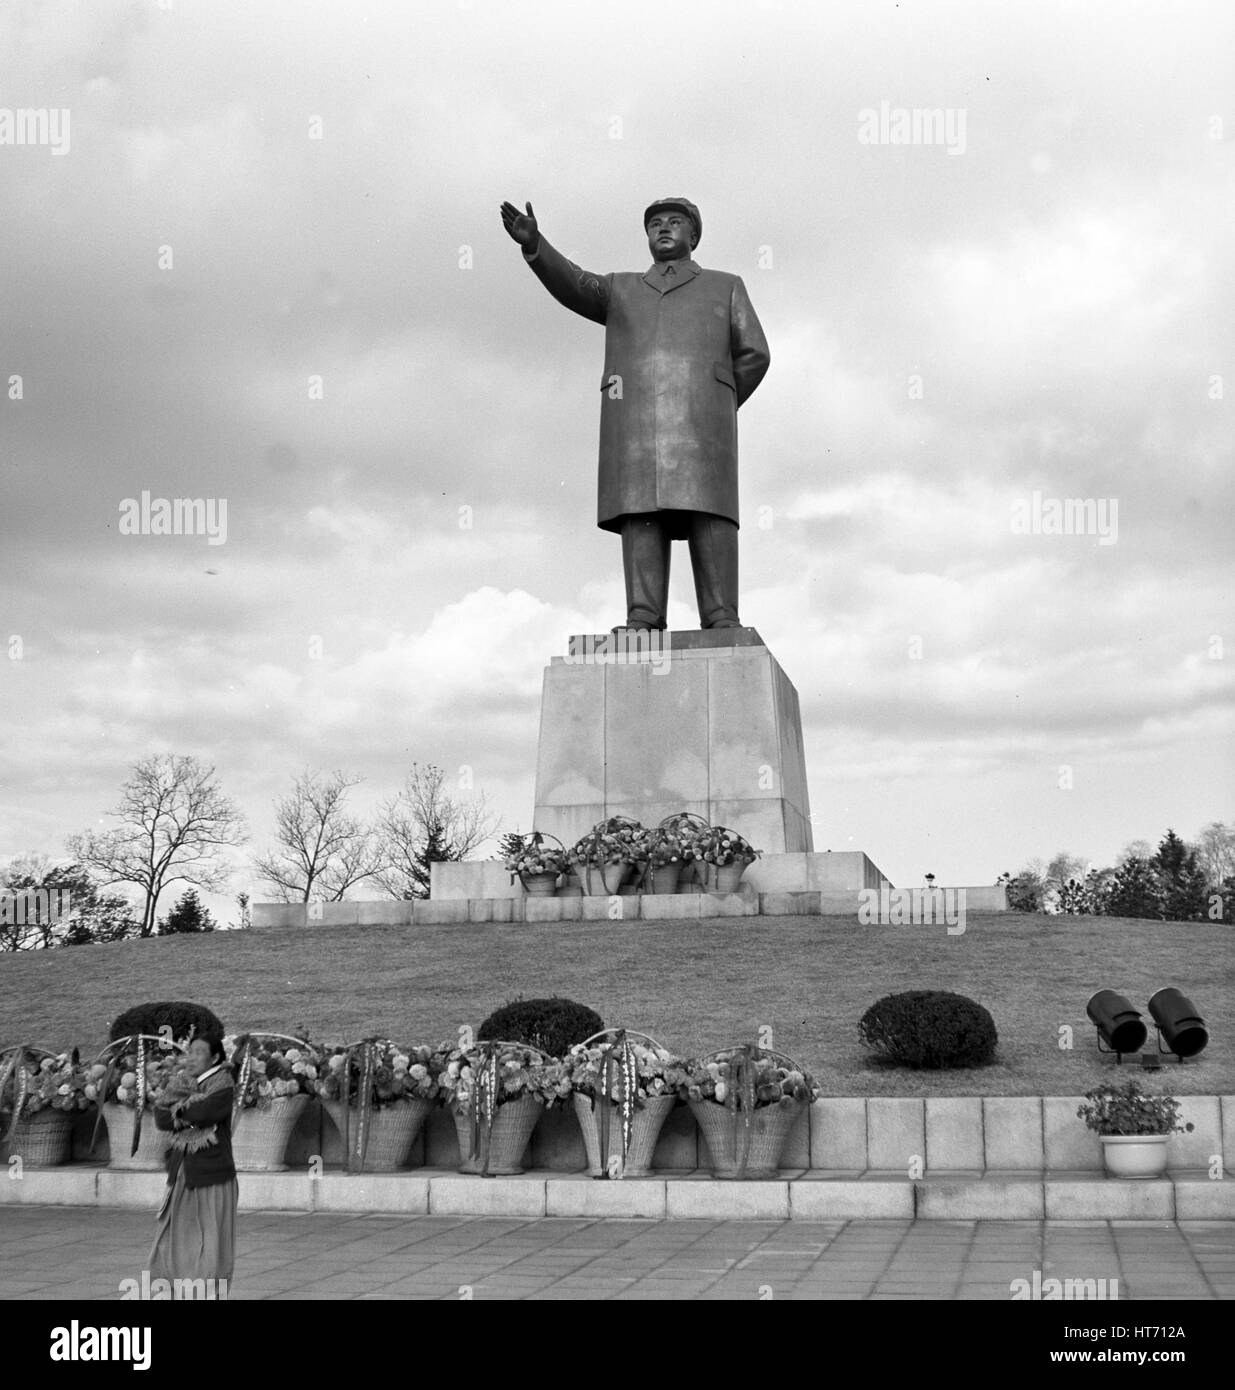 View of a monument of North Korean dictator Kim II Sung (former Kim lr Sen) in Hamhung in the Korean Democratic - Stock Image